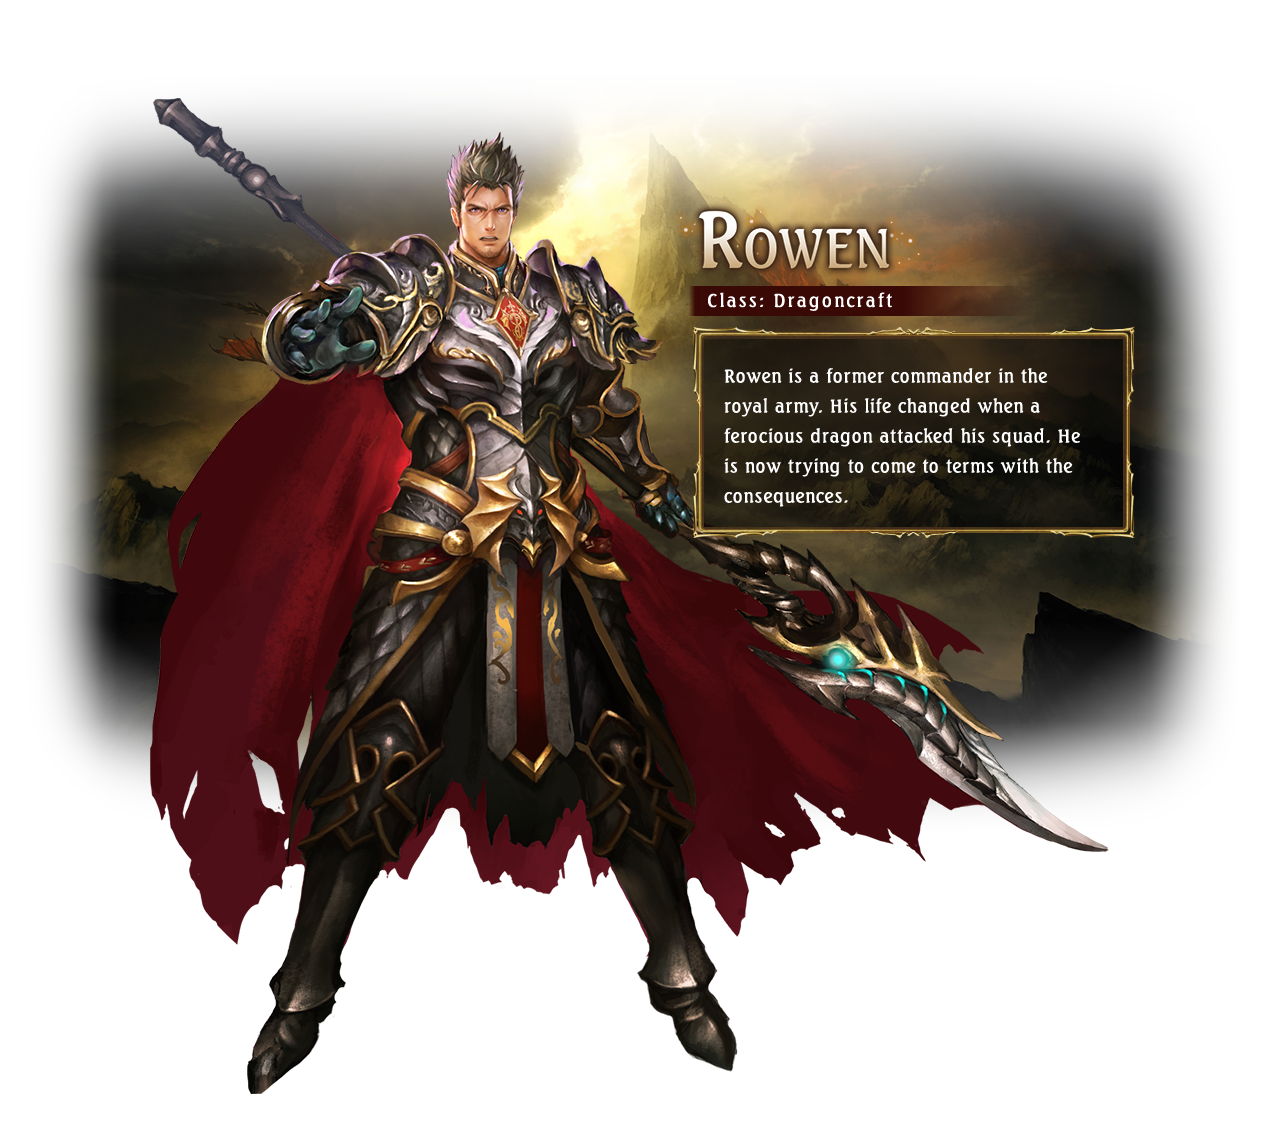 Rowen / Class: Dragoncraft / Rowen is a former commander in the royal army. His life changed when a ferocious dragon attacked his squad. He is now trying to come to terms with the consequences.